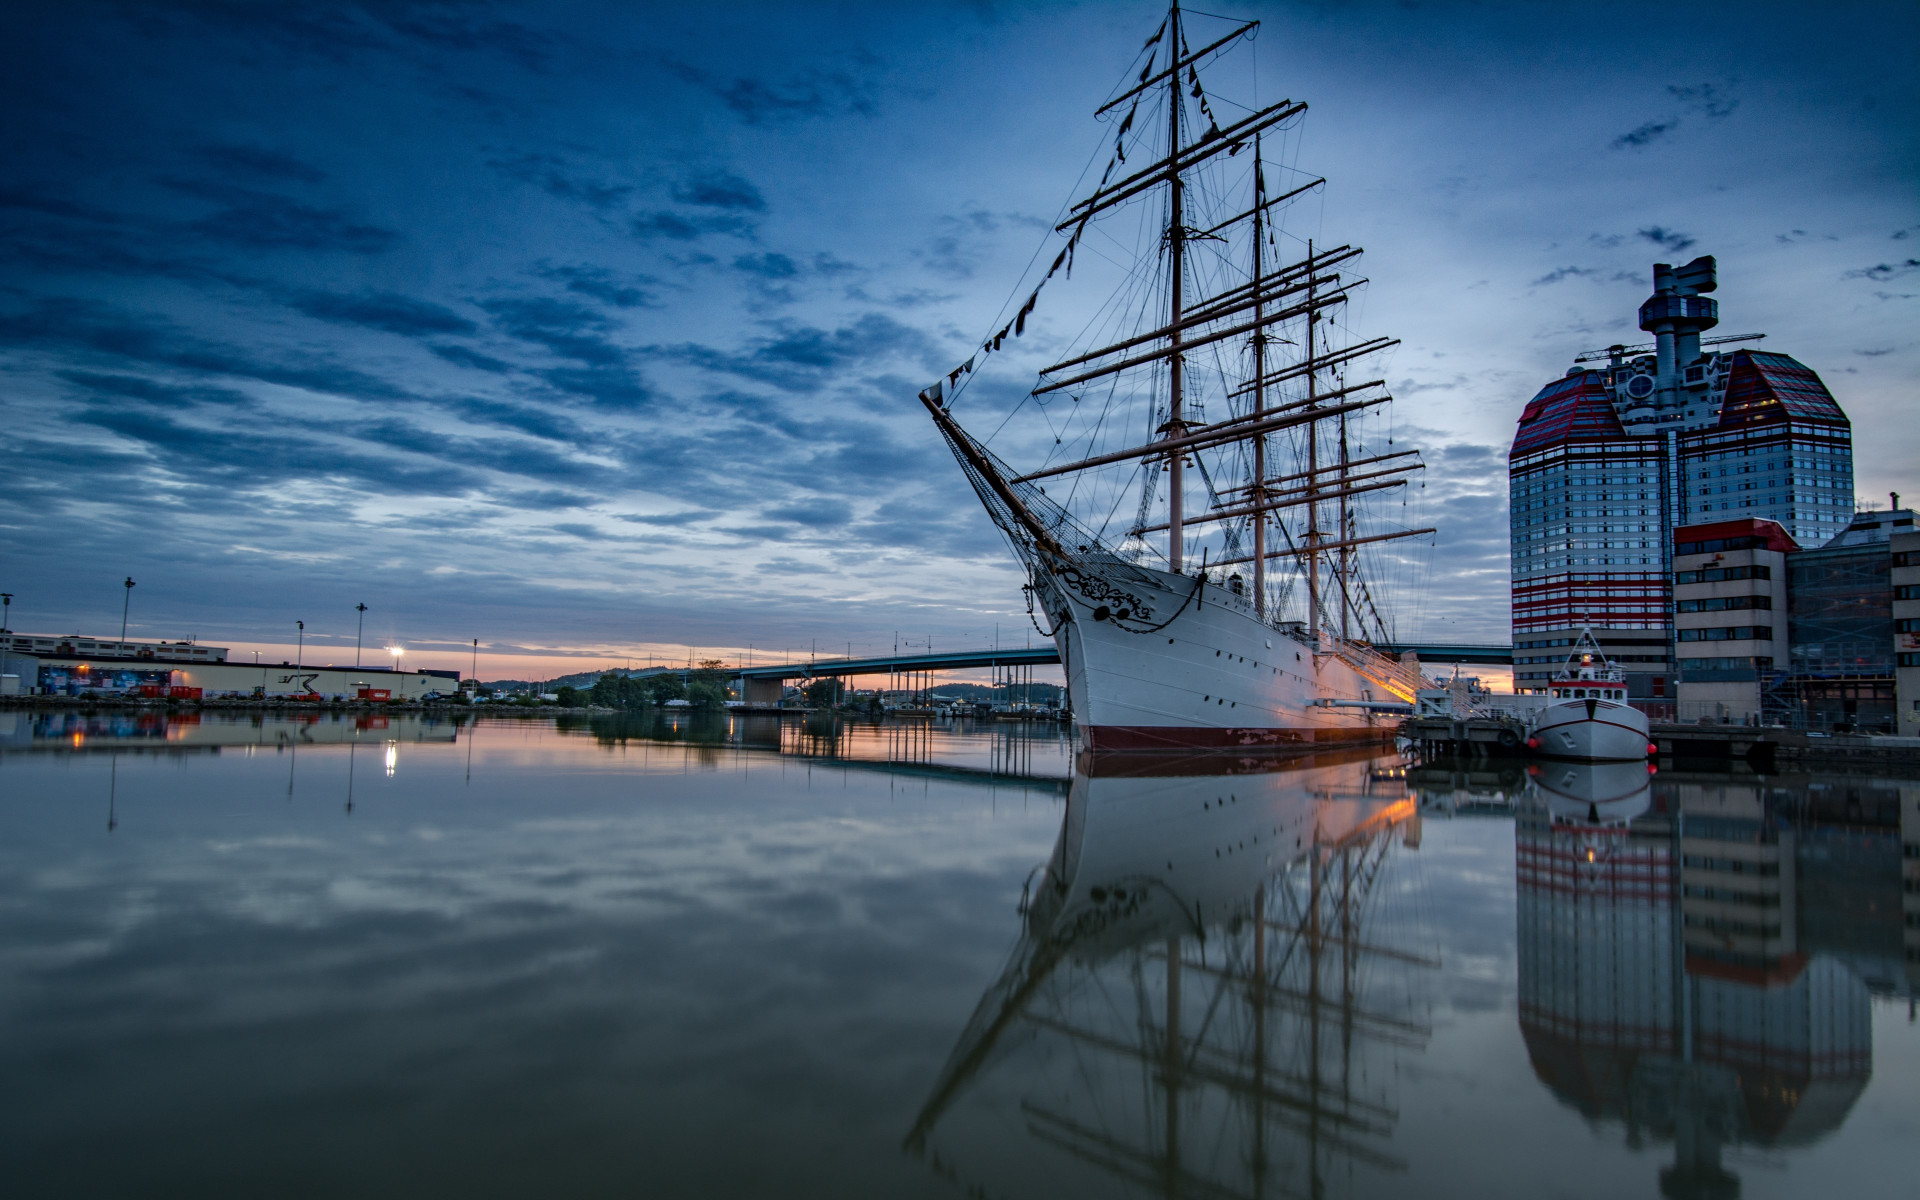 Historic wooden sailing ship in Gothenburg Harbour | 1920x1200 wallpaper